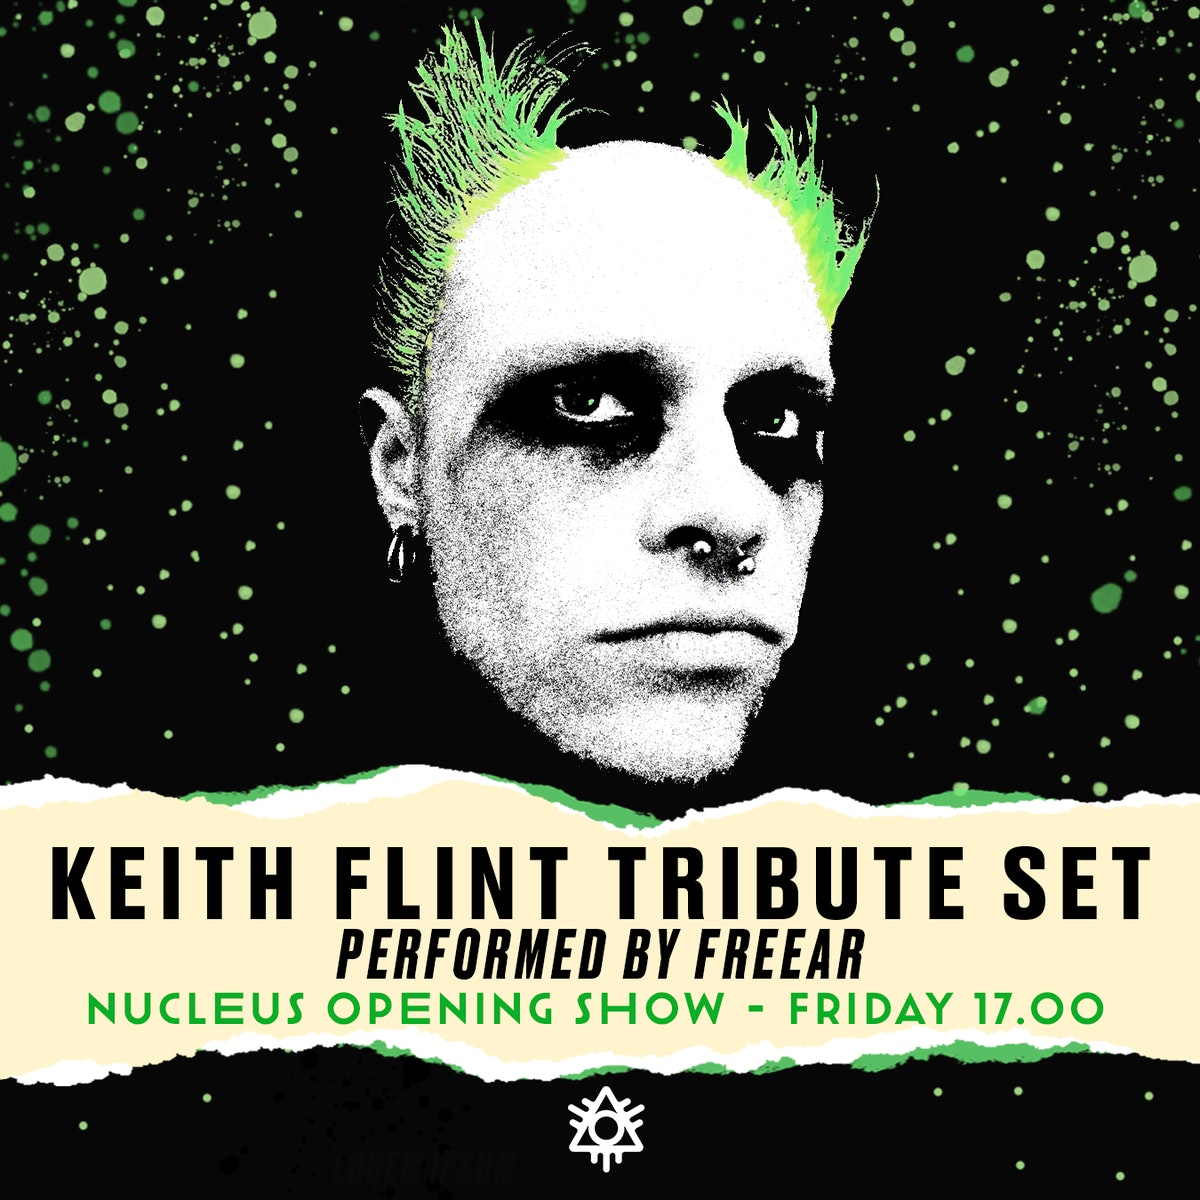 Keith Flint Tribute Set